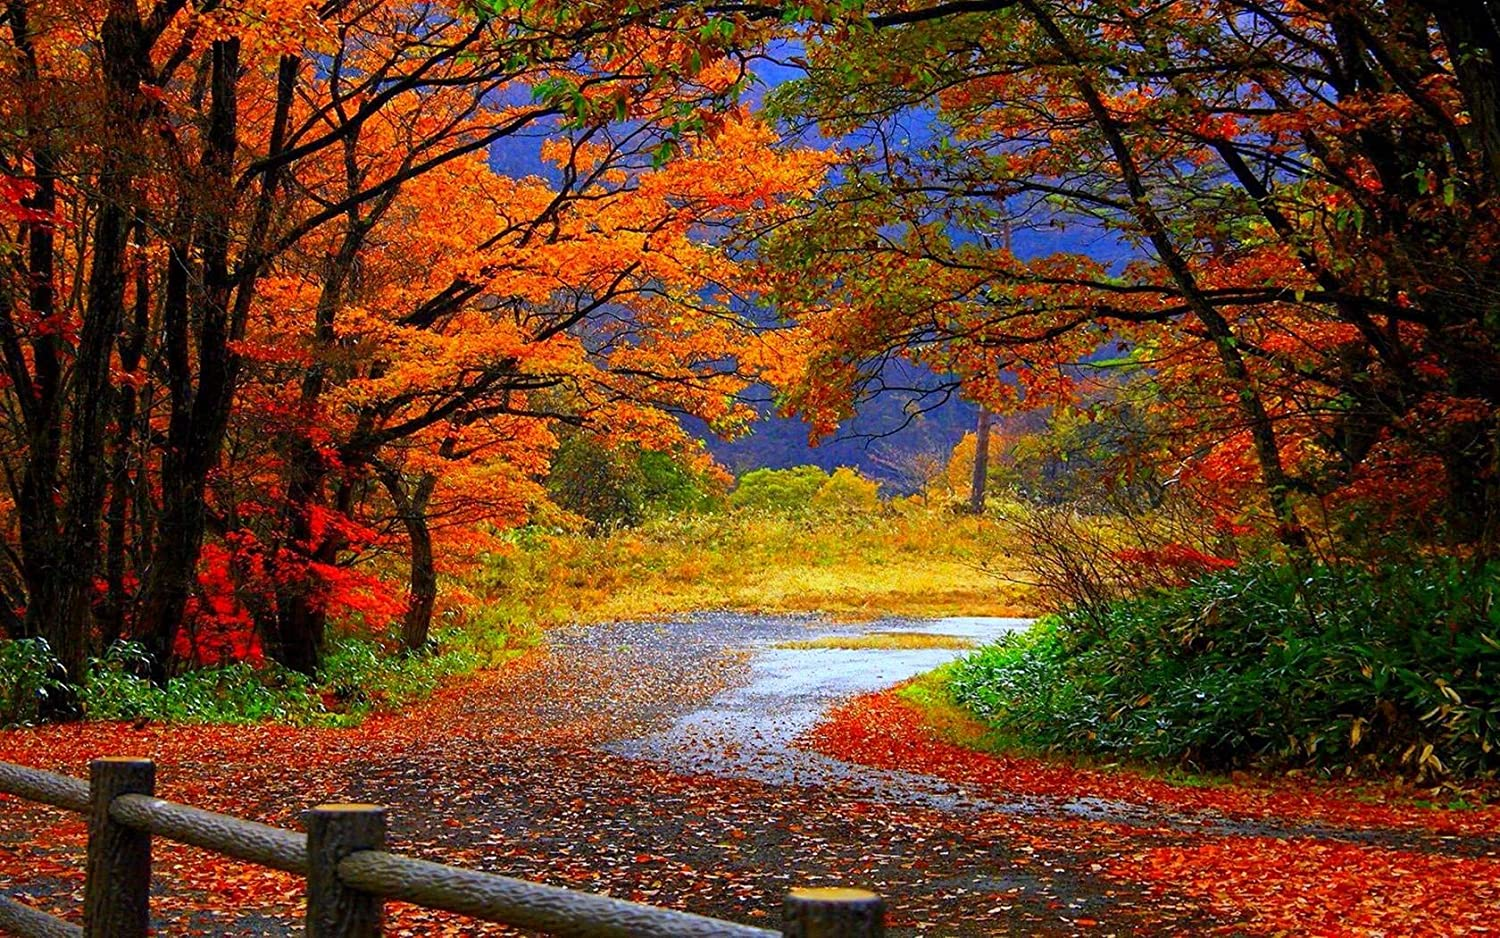 Buy Avikalp Exclusive Awi3274 Beautiful Road Falling Leaves Autumn Colorful Trees Nature Scenery Full Hd Wallpapers 152cm X 121cm Online At Low Prices In India Amazon In